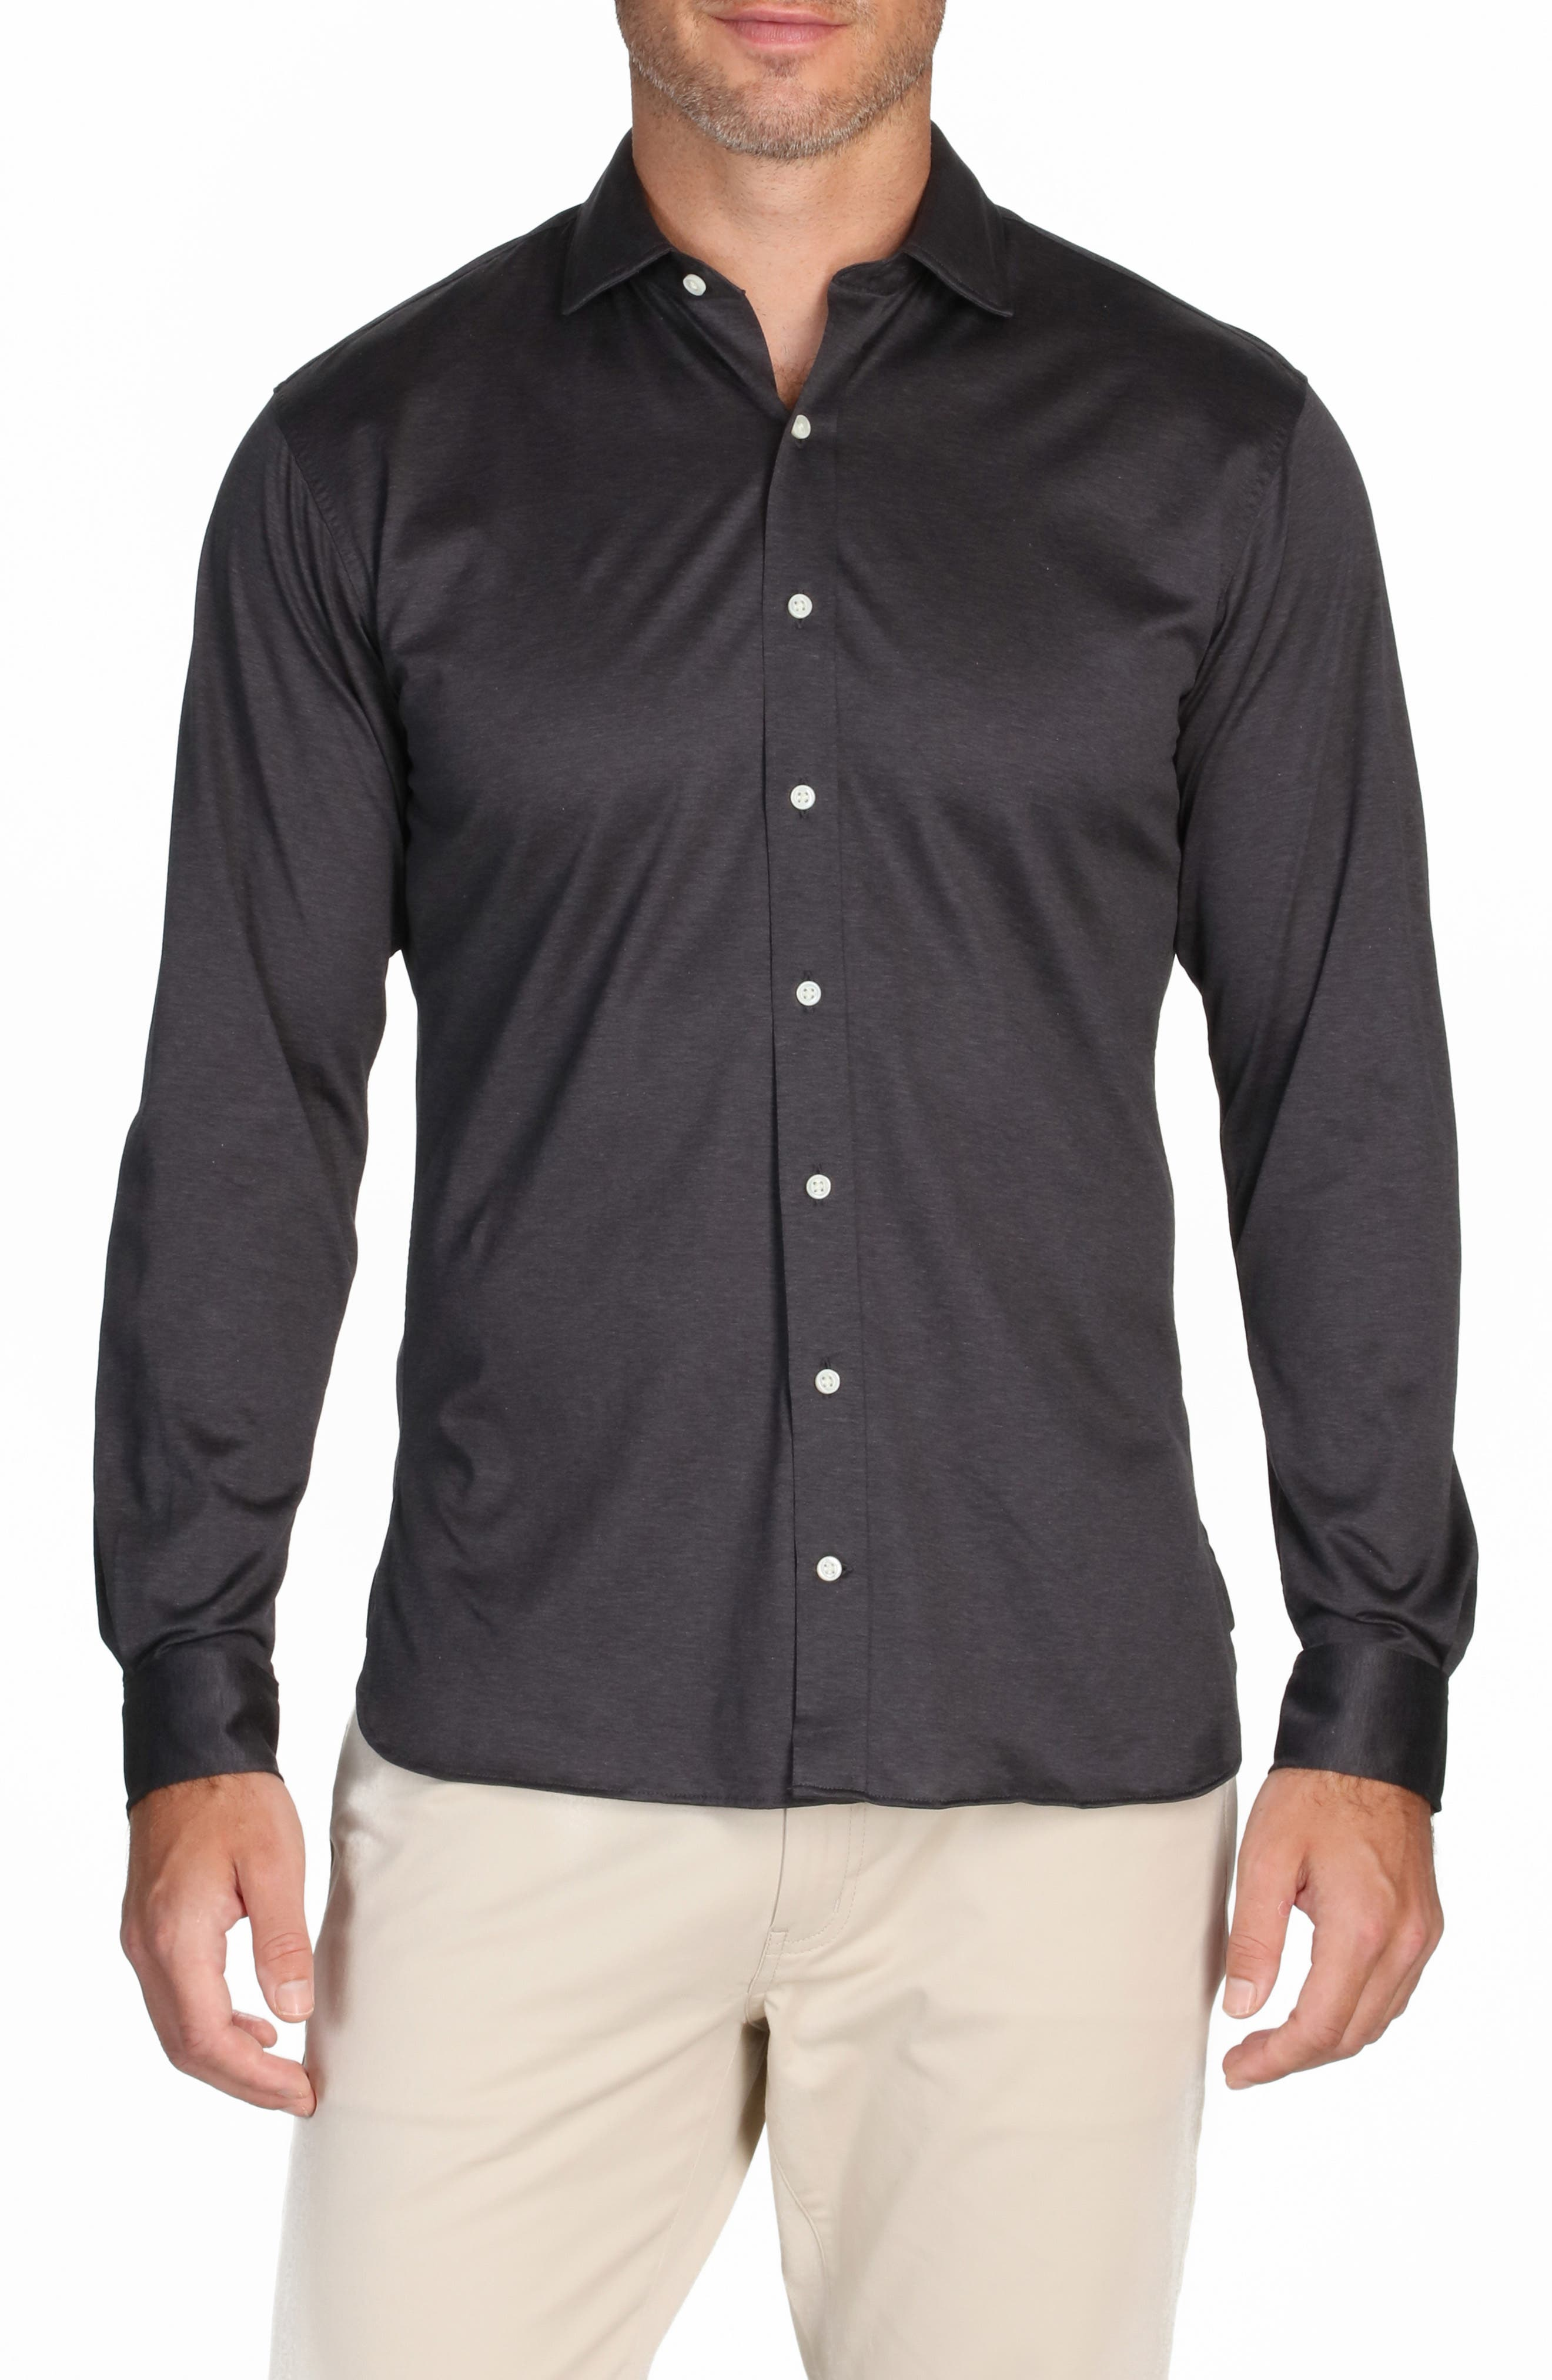 The Zoom Cotton Button-Up Shirt